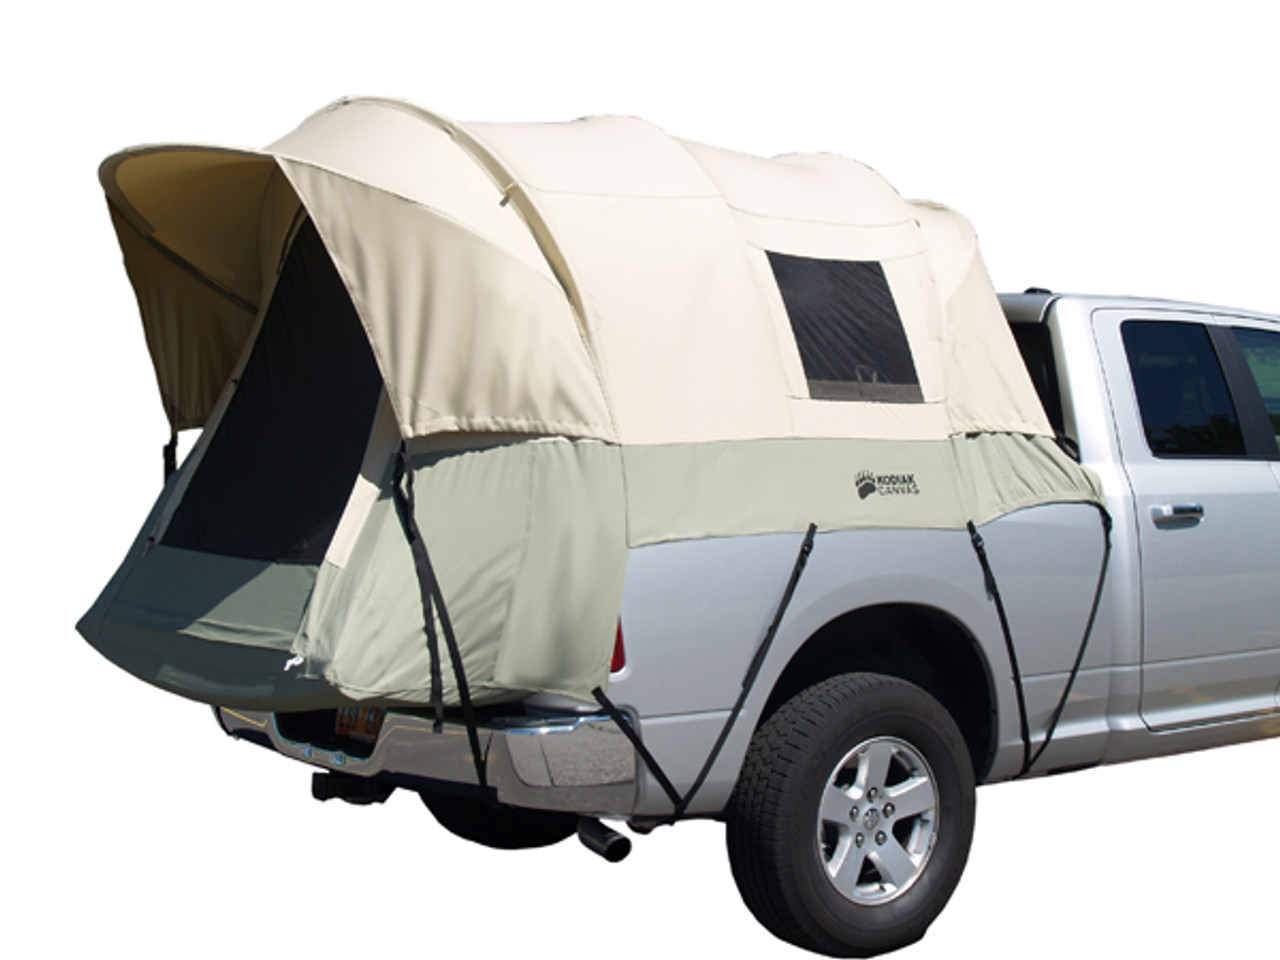 Tent Body 6 ft. Truck Tent (tent body only)